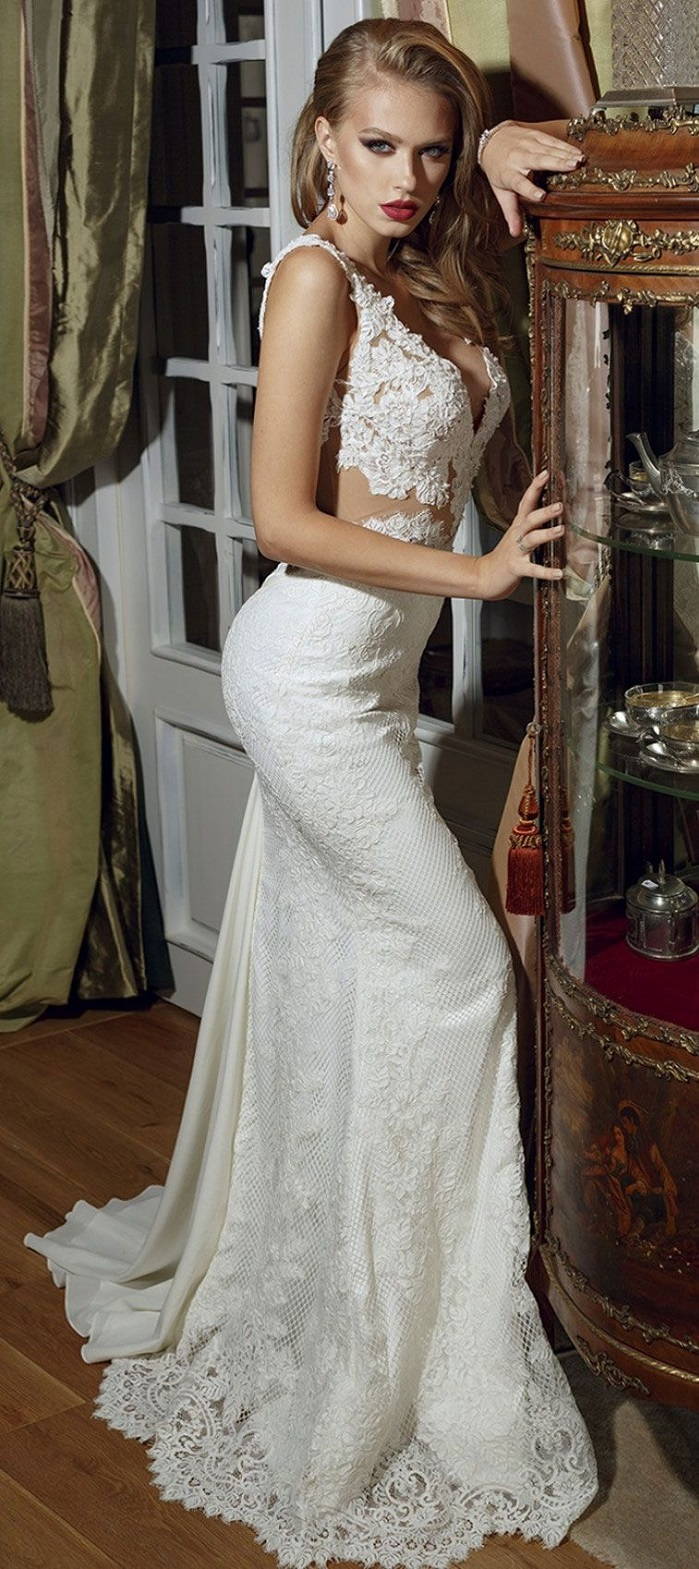 Elegantly Romantic Wedding Dresses For the bride who strives for confidence & impeccable glamorous style